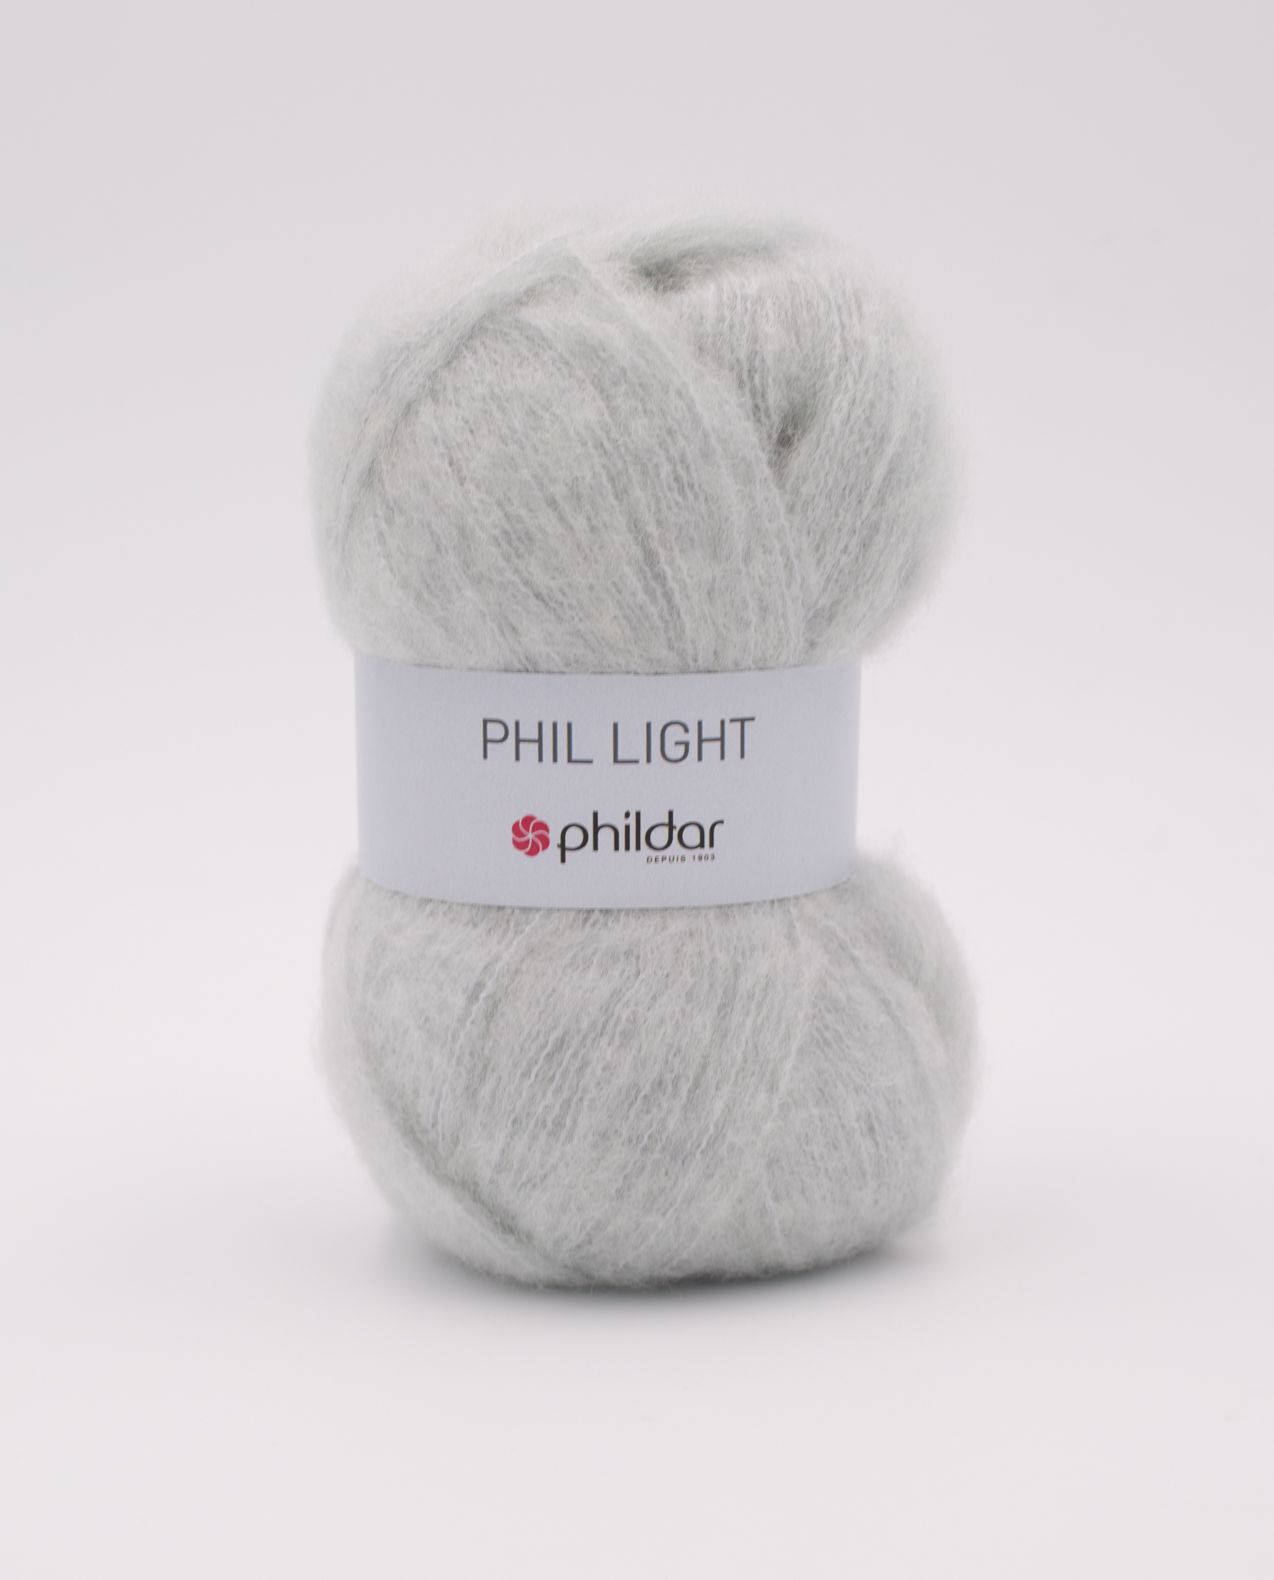 PHIL LIGHT